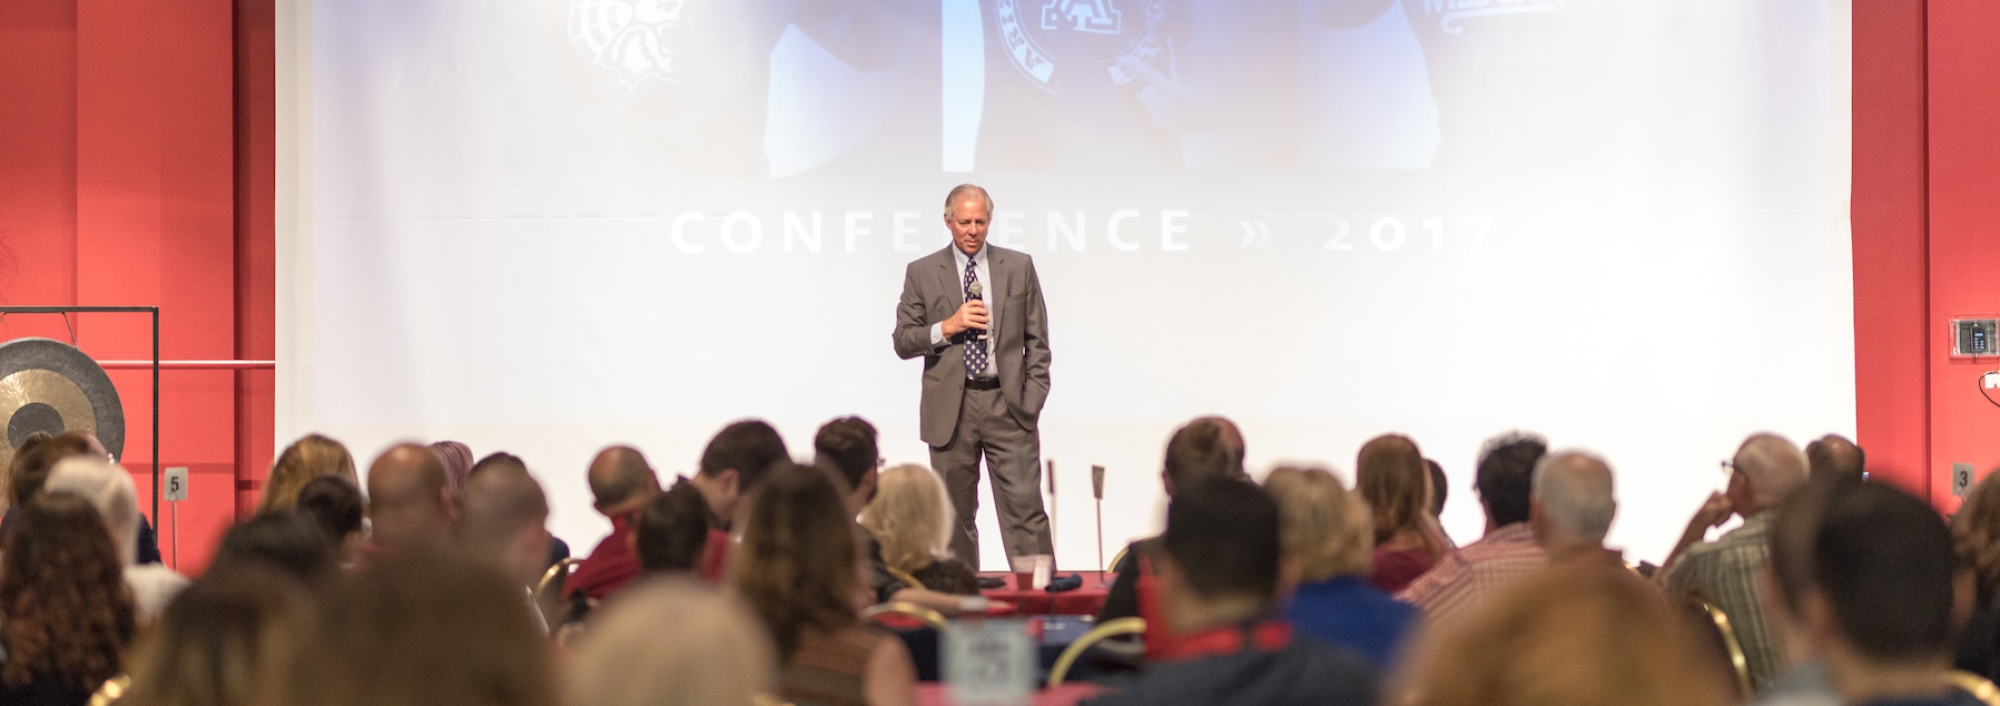 President Robbins speaking at the UA One Conference 2017